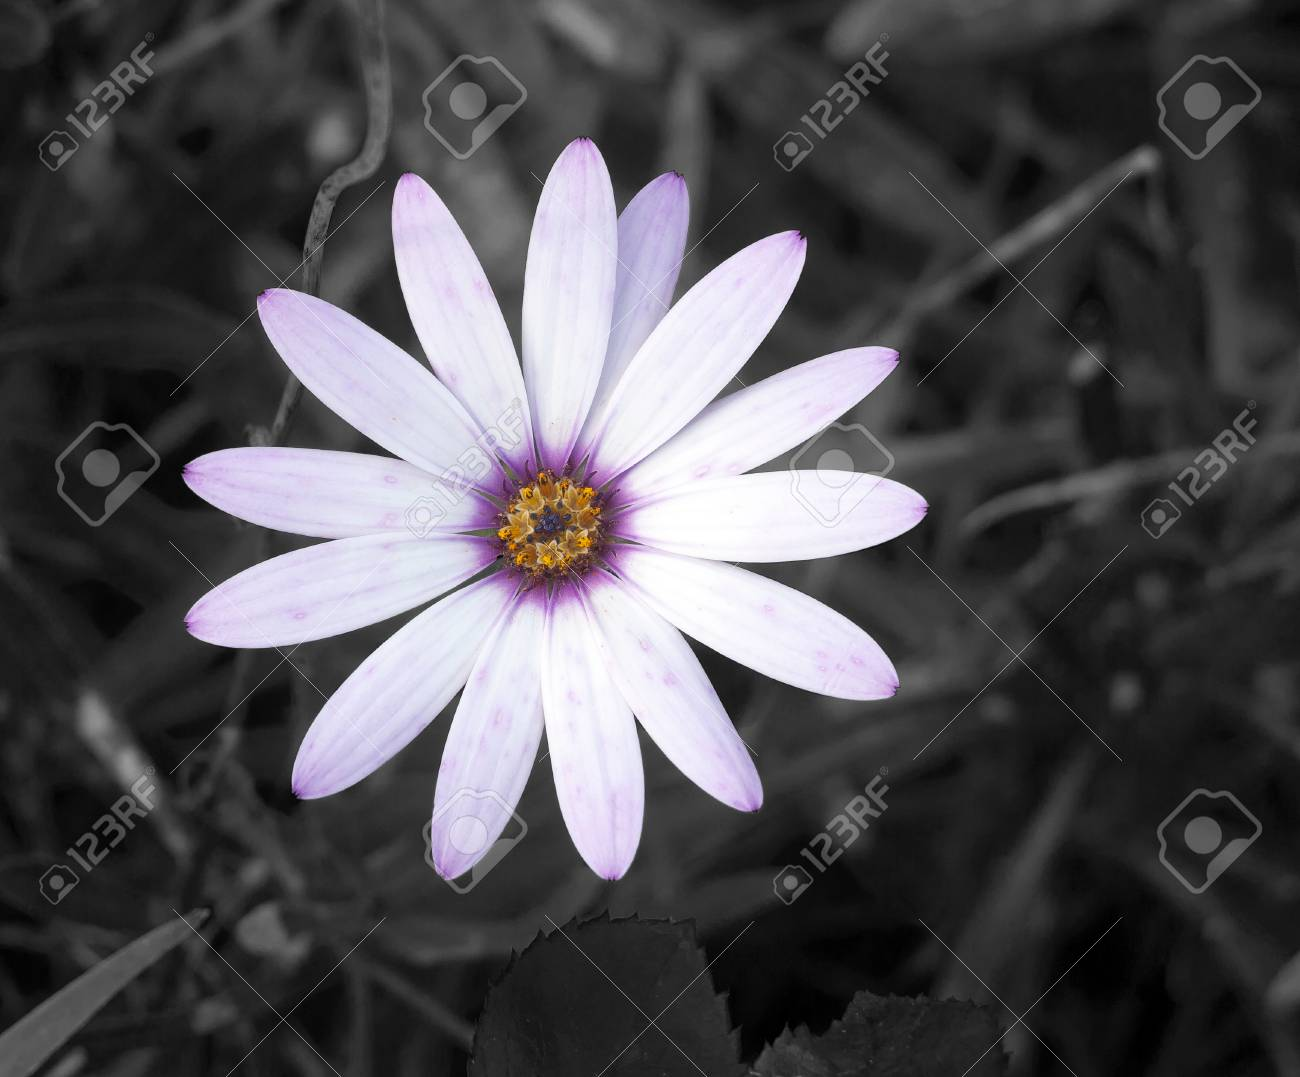 White Daisy Flower Petals Full Open Top View Essex England